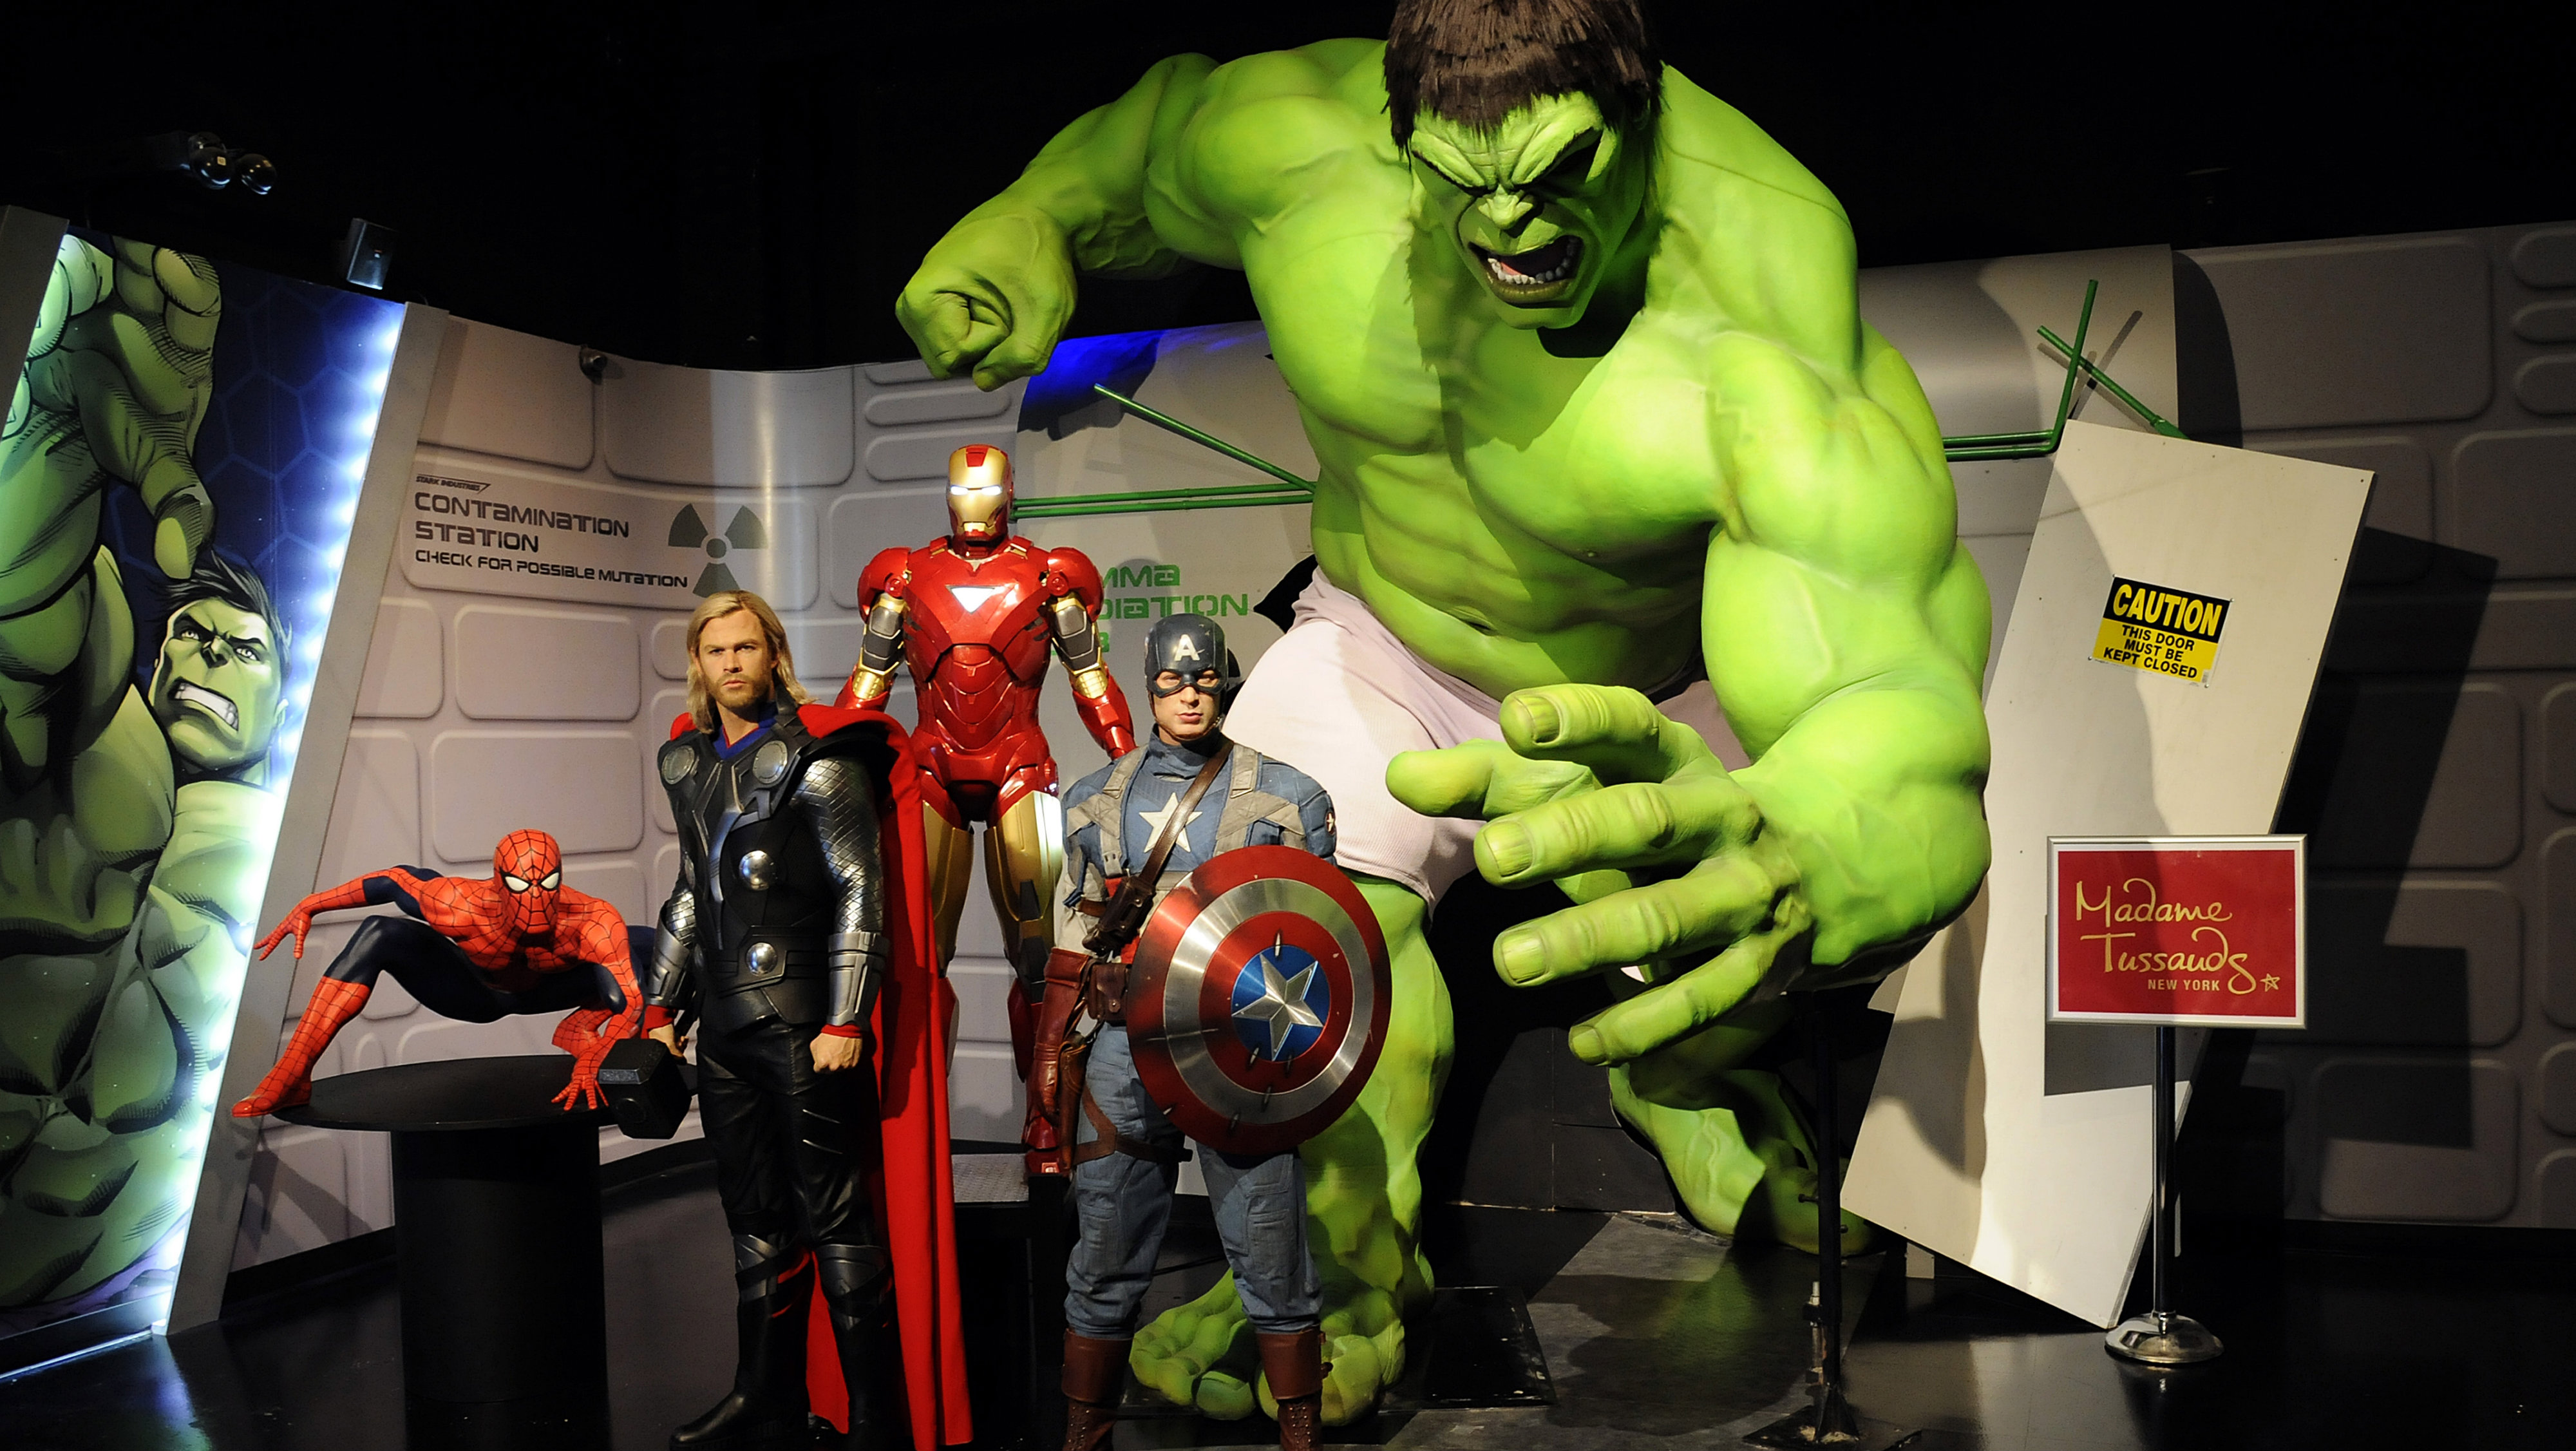 """Wax figures designed to look like characters from the Marvel Entertainment film """"The Avengers"""" are on display at the """"Marvel Superhero Experience"""" at Madame Tussauds wax museum in New York April 26, 2012."""